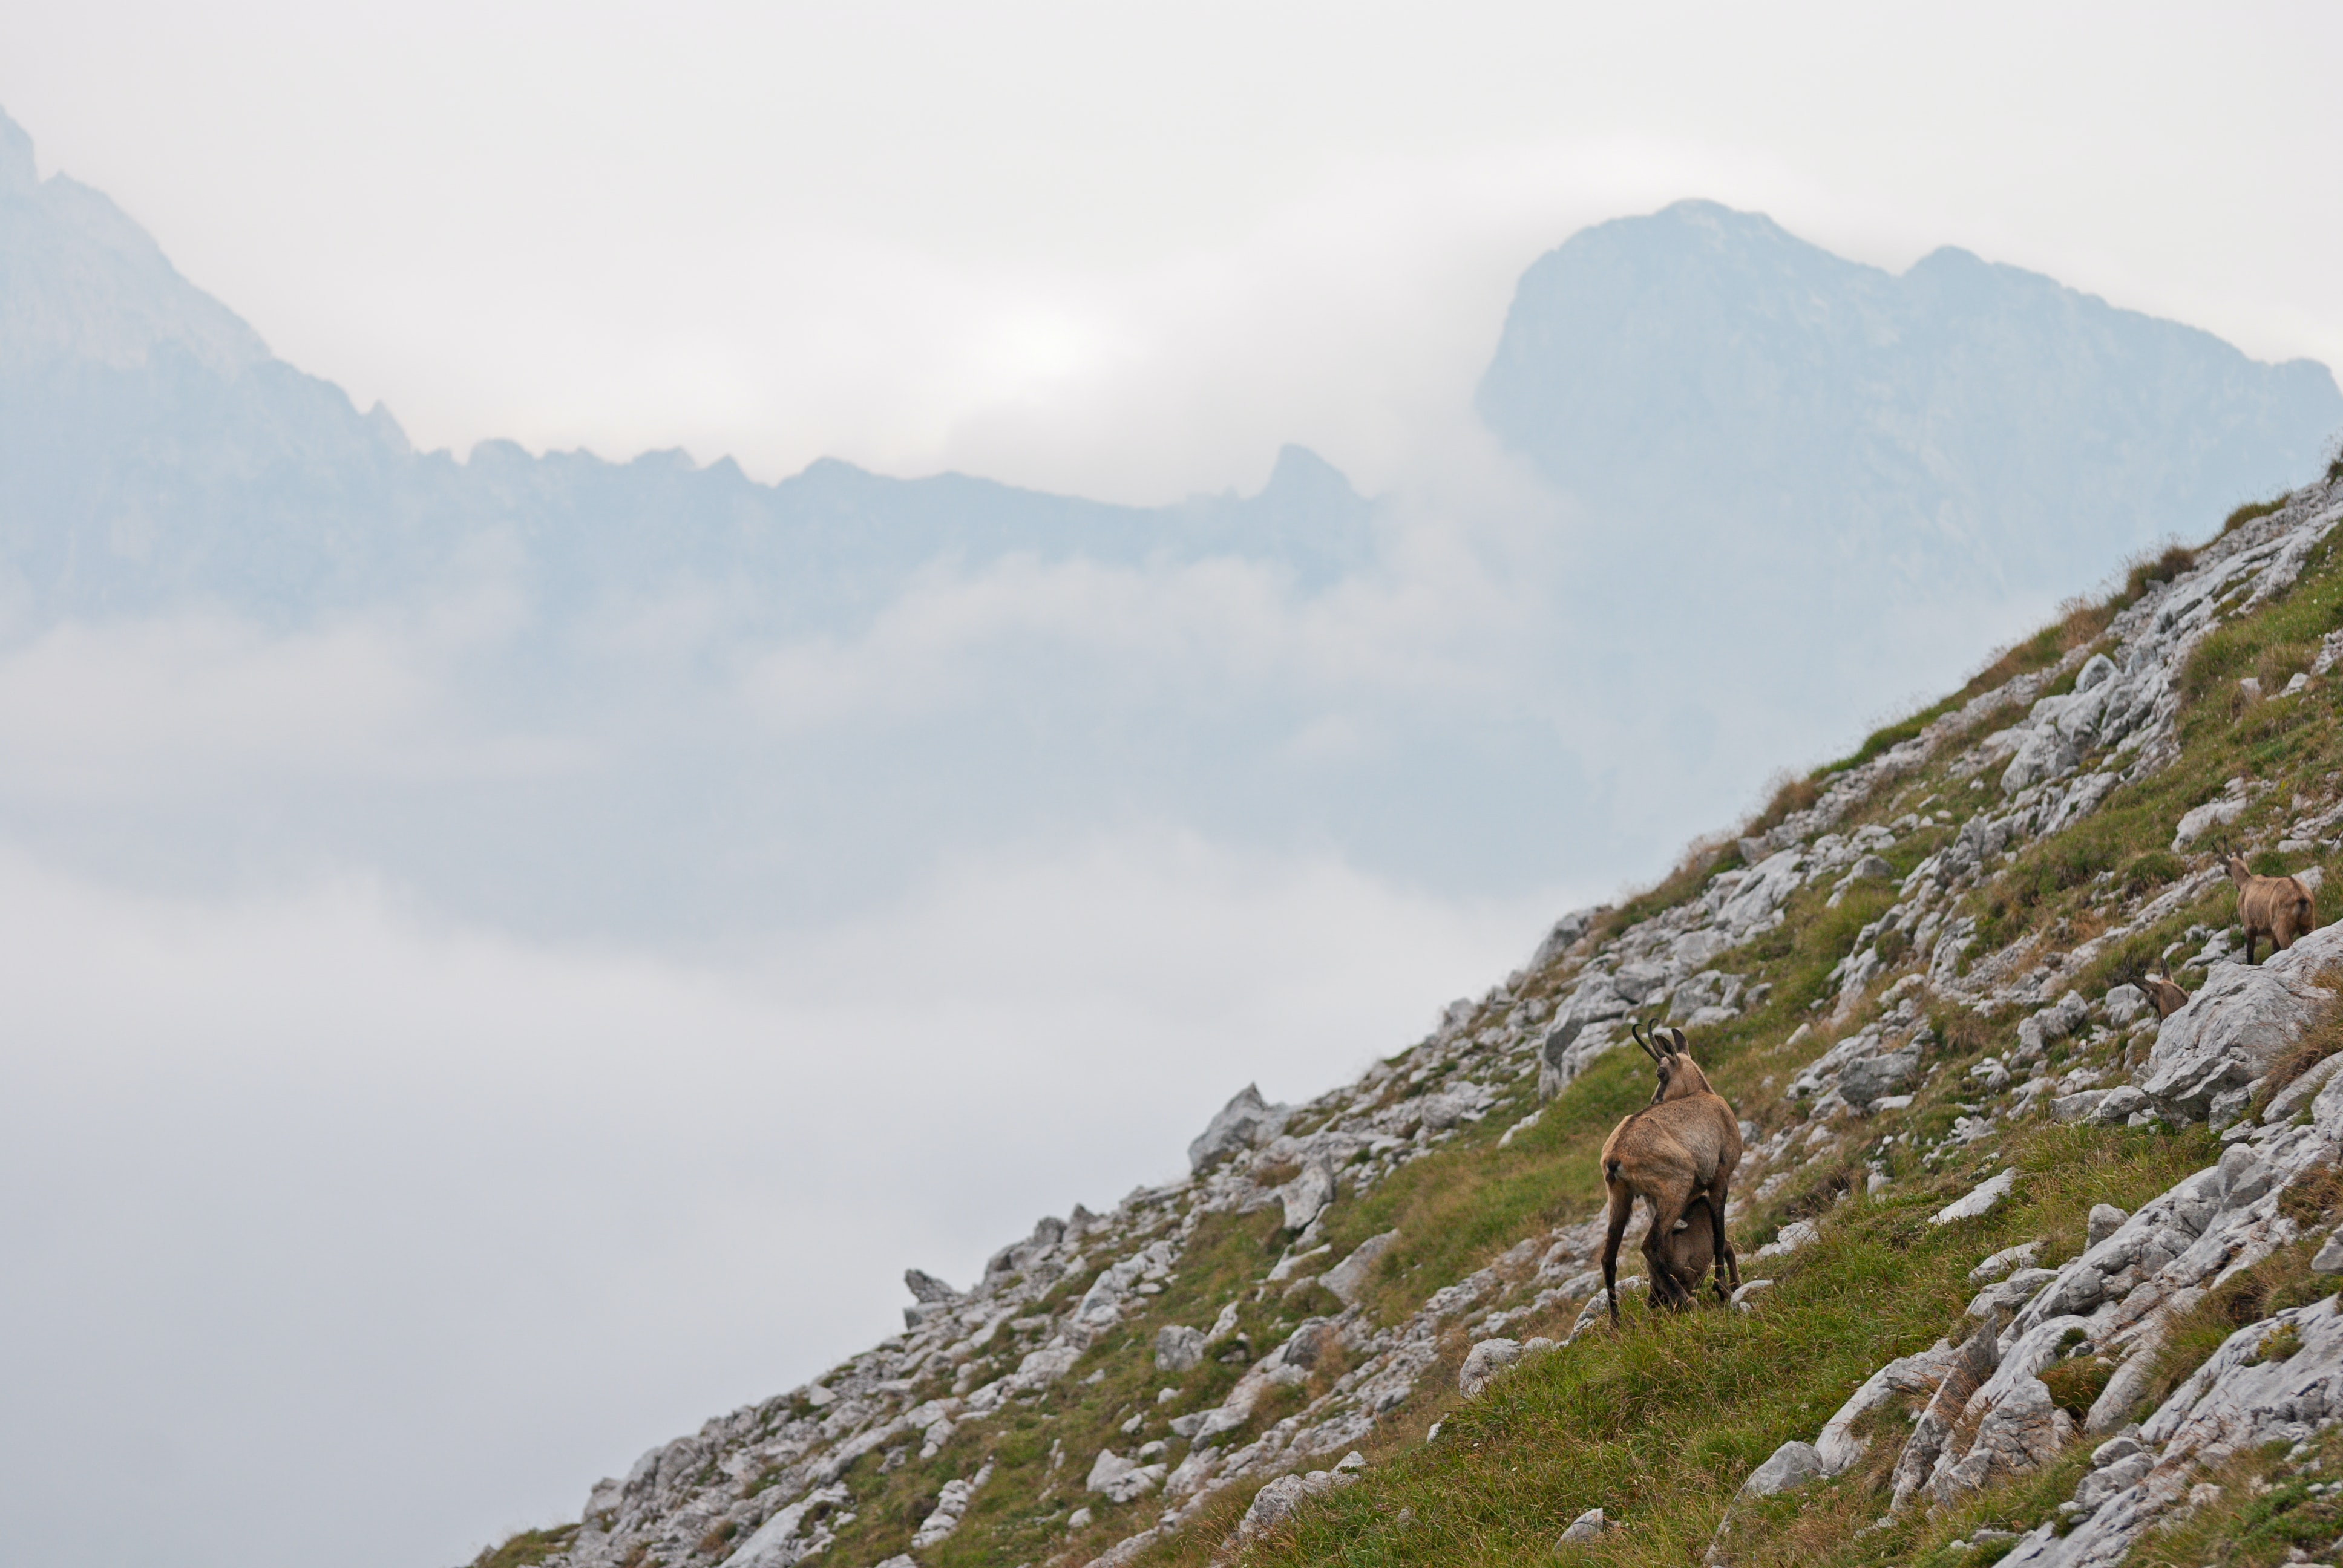 Goat grazing on the foggy rocky mountainside of Nationalpark Gesaeuse